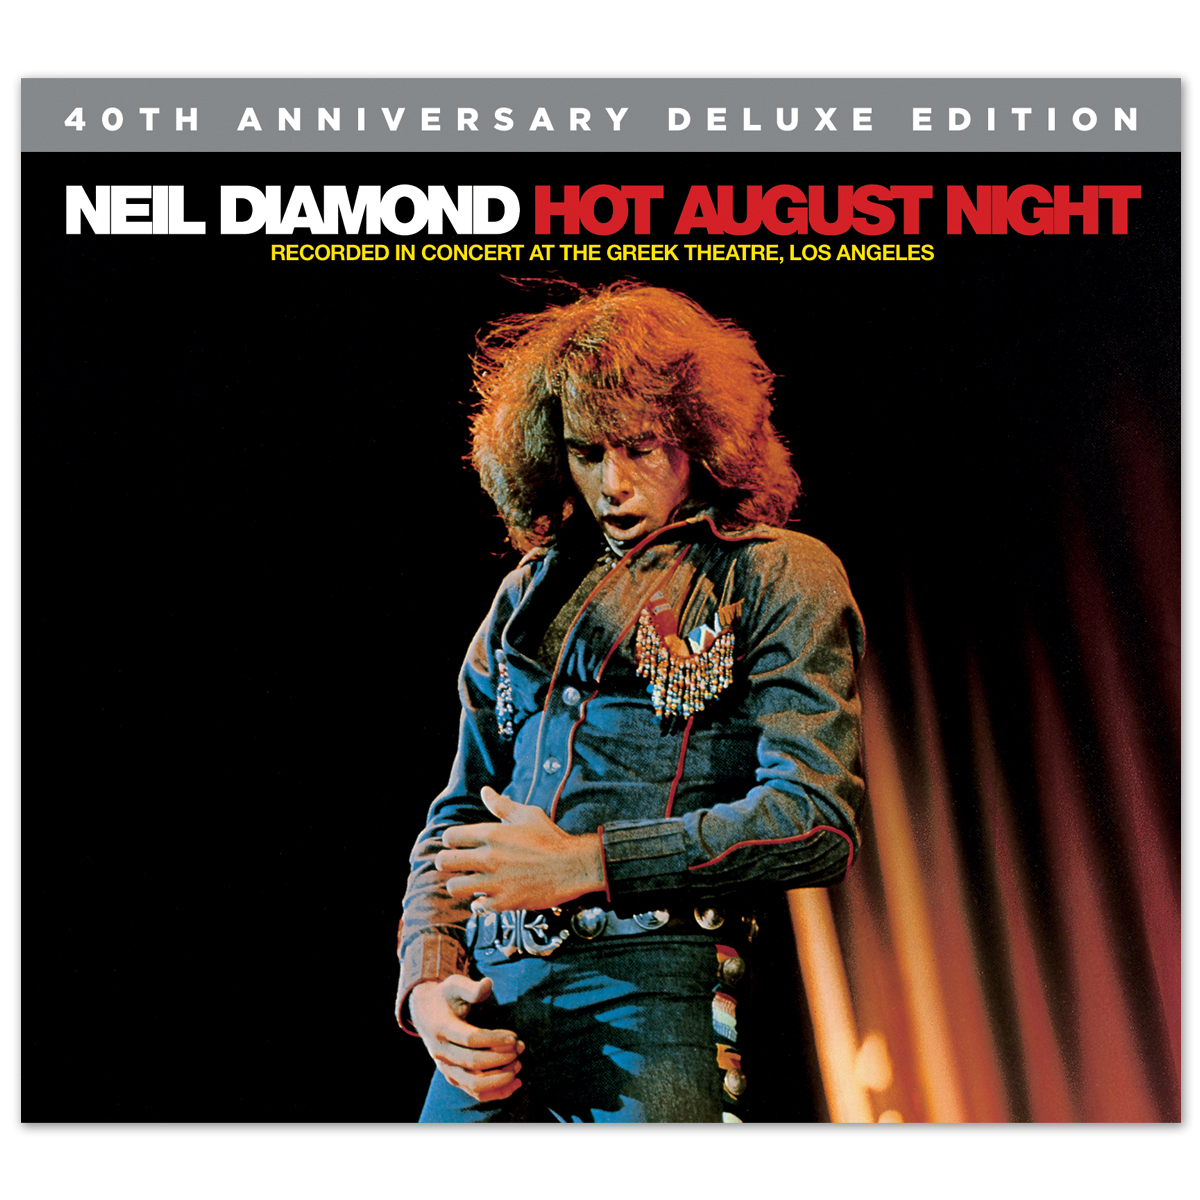 Neil Diamond Hot August Night (2-CD 40th Anniversary Deluxe Edition)